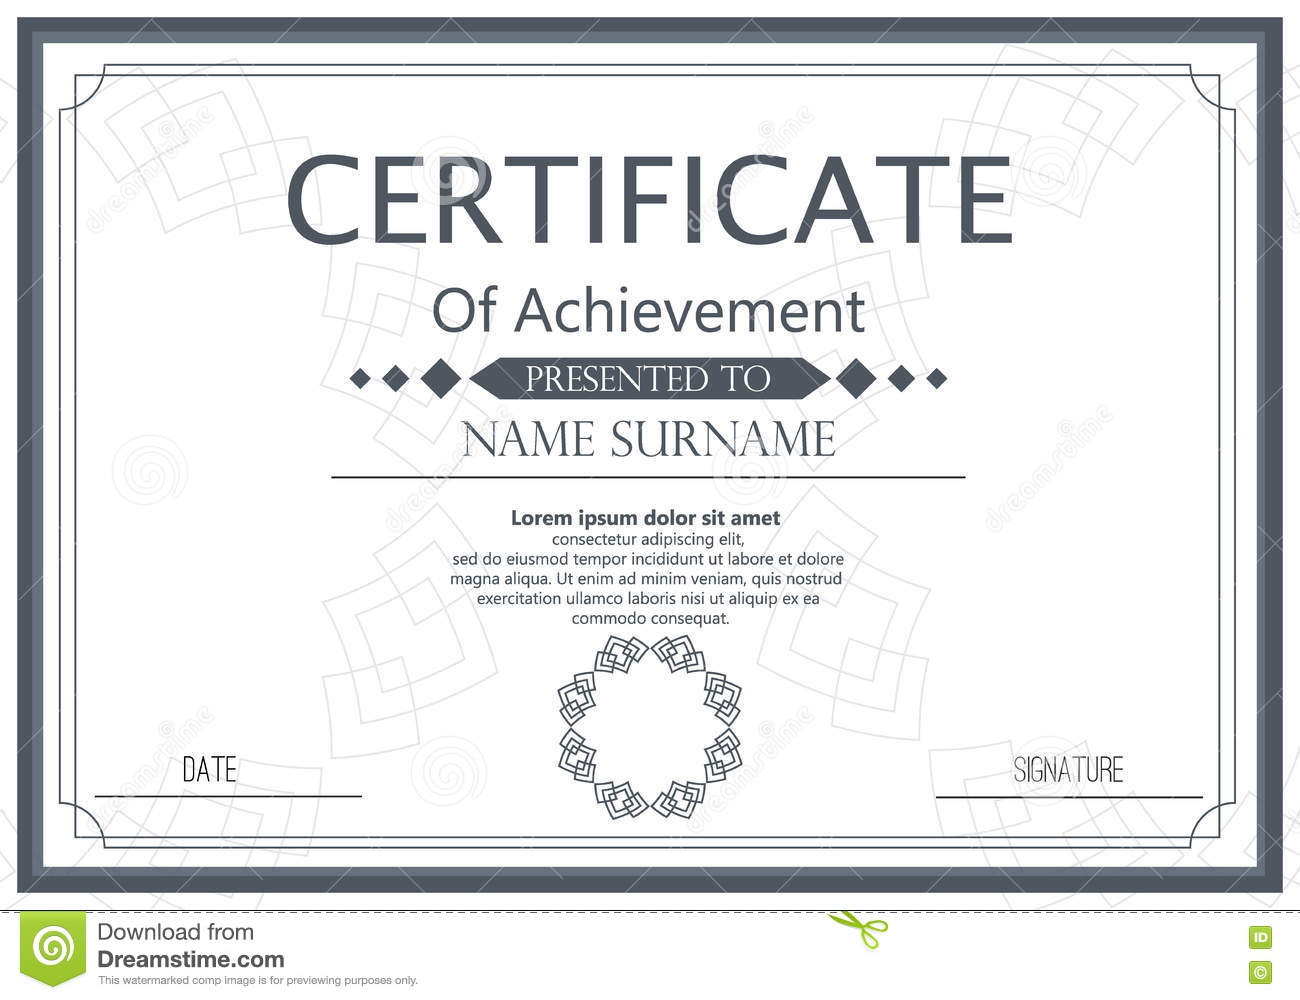 Certificate template stock illustration illustration of business certificate template award graduation certificate achievement success template border business paper coupon document certificate ornament elegant frame accmission Choice Image